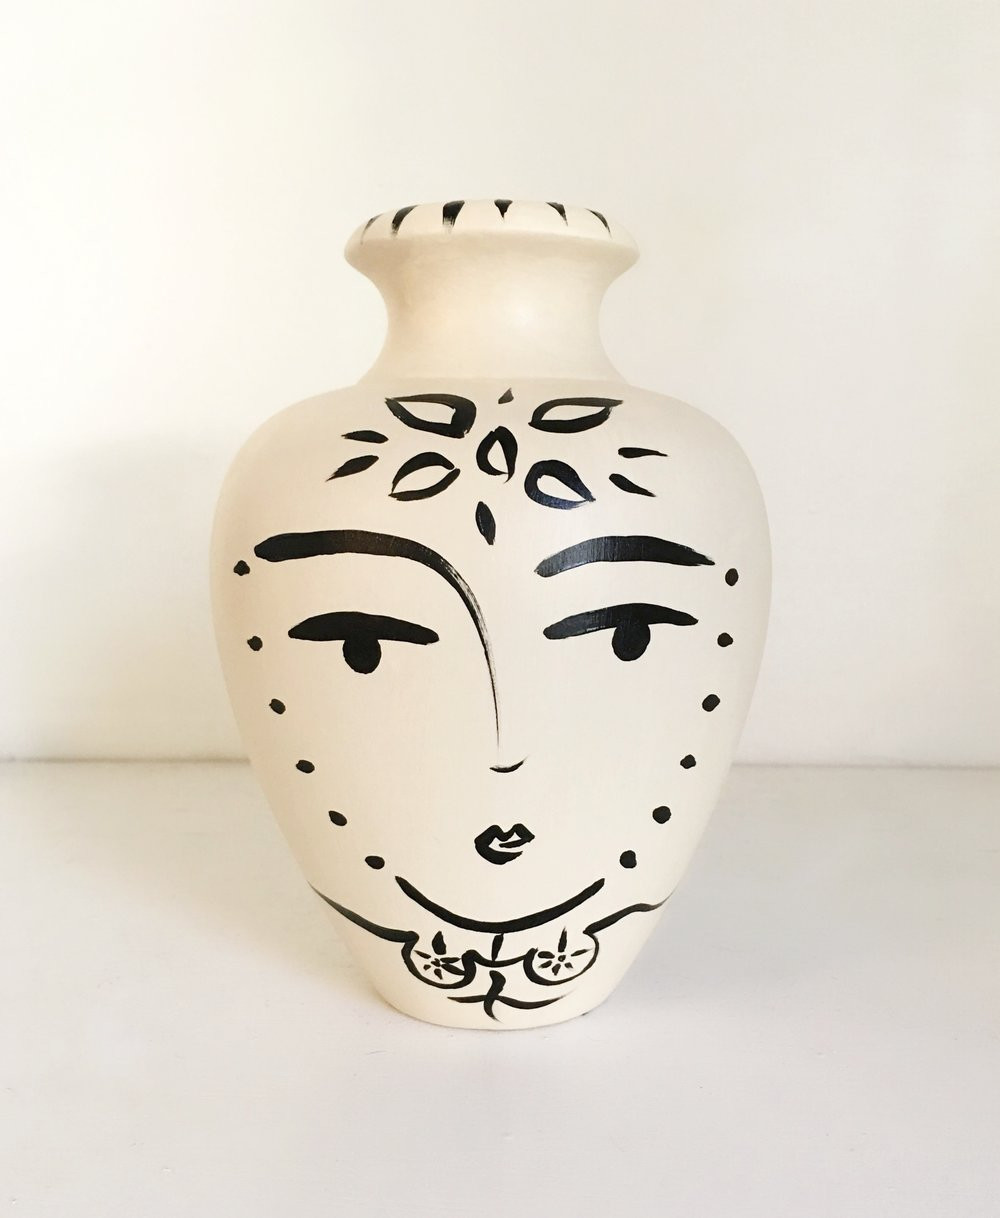 white ceramic head vase of paige pottery paige kalena follmann pertaining to sacred femme flower vase sold quogue gallery